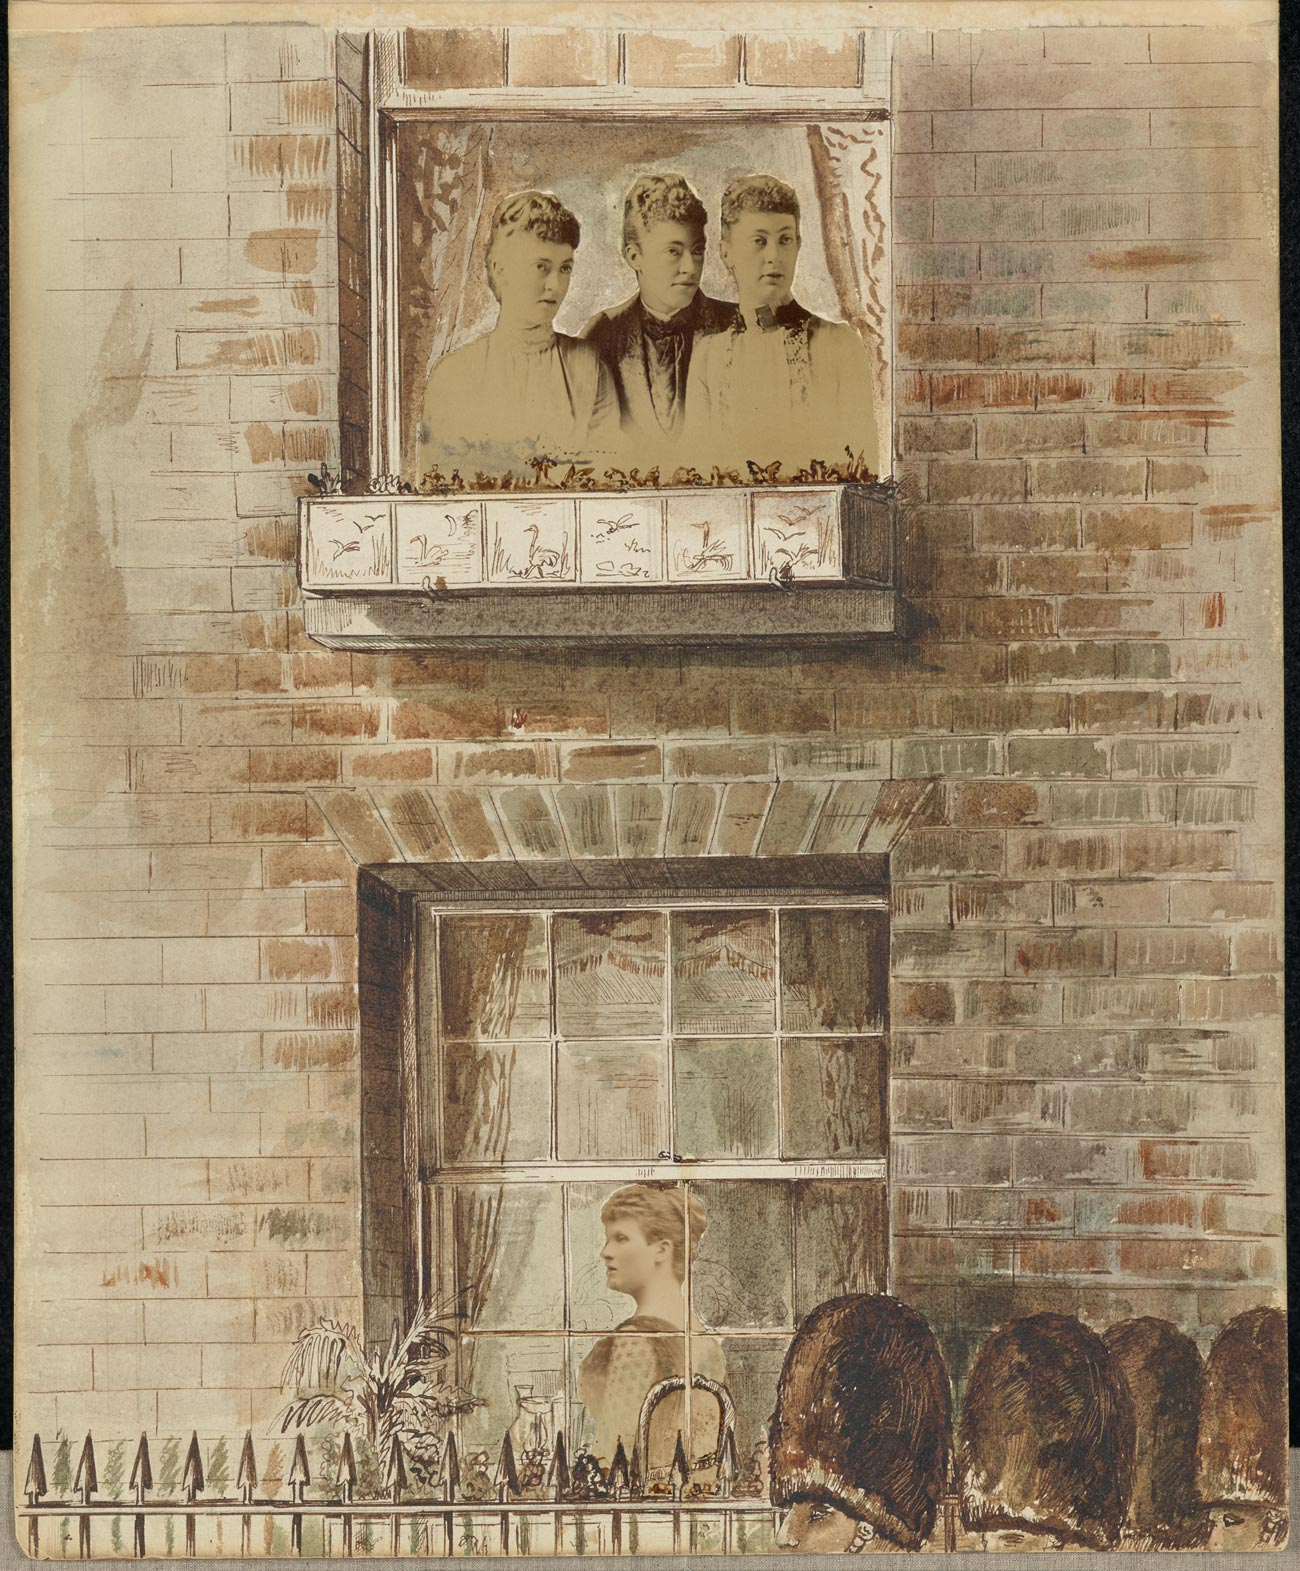 Mixed media, a drawing of two windows, 1st and 2nd floor, with cutouts of photographs of women in the windows. British guardsmen walk by, seen only by their tall hats.